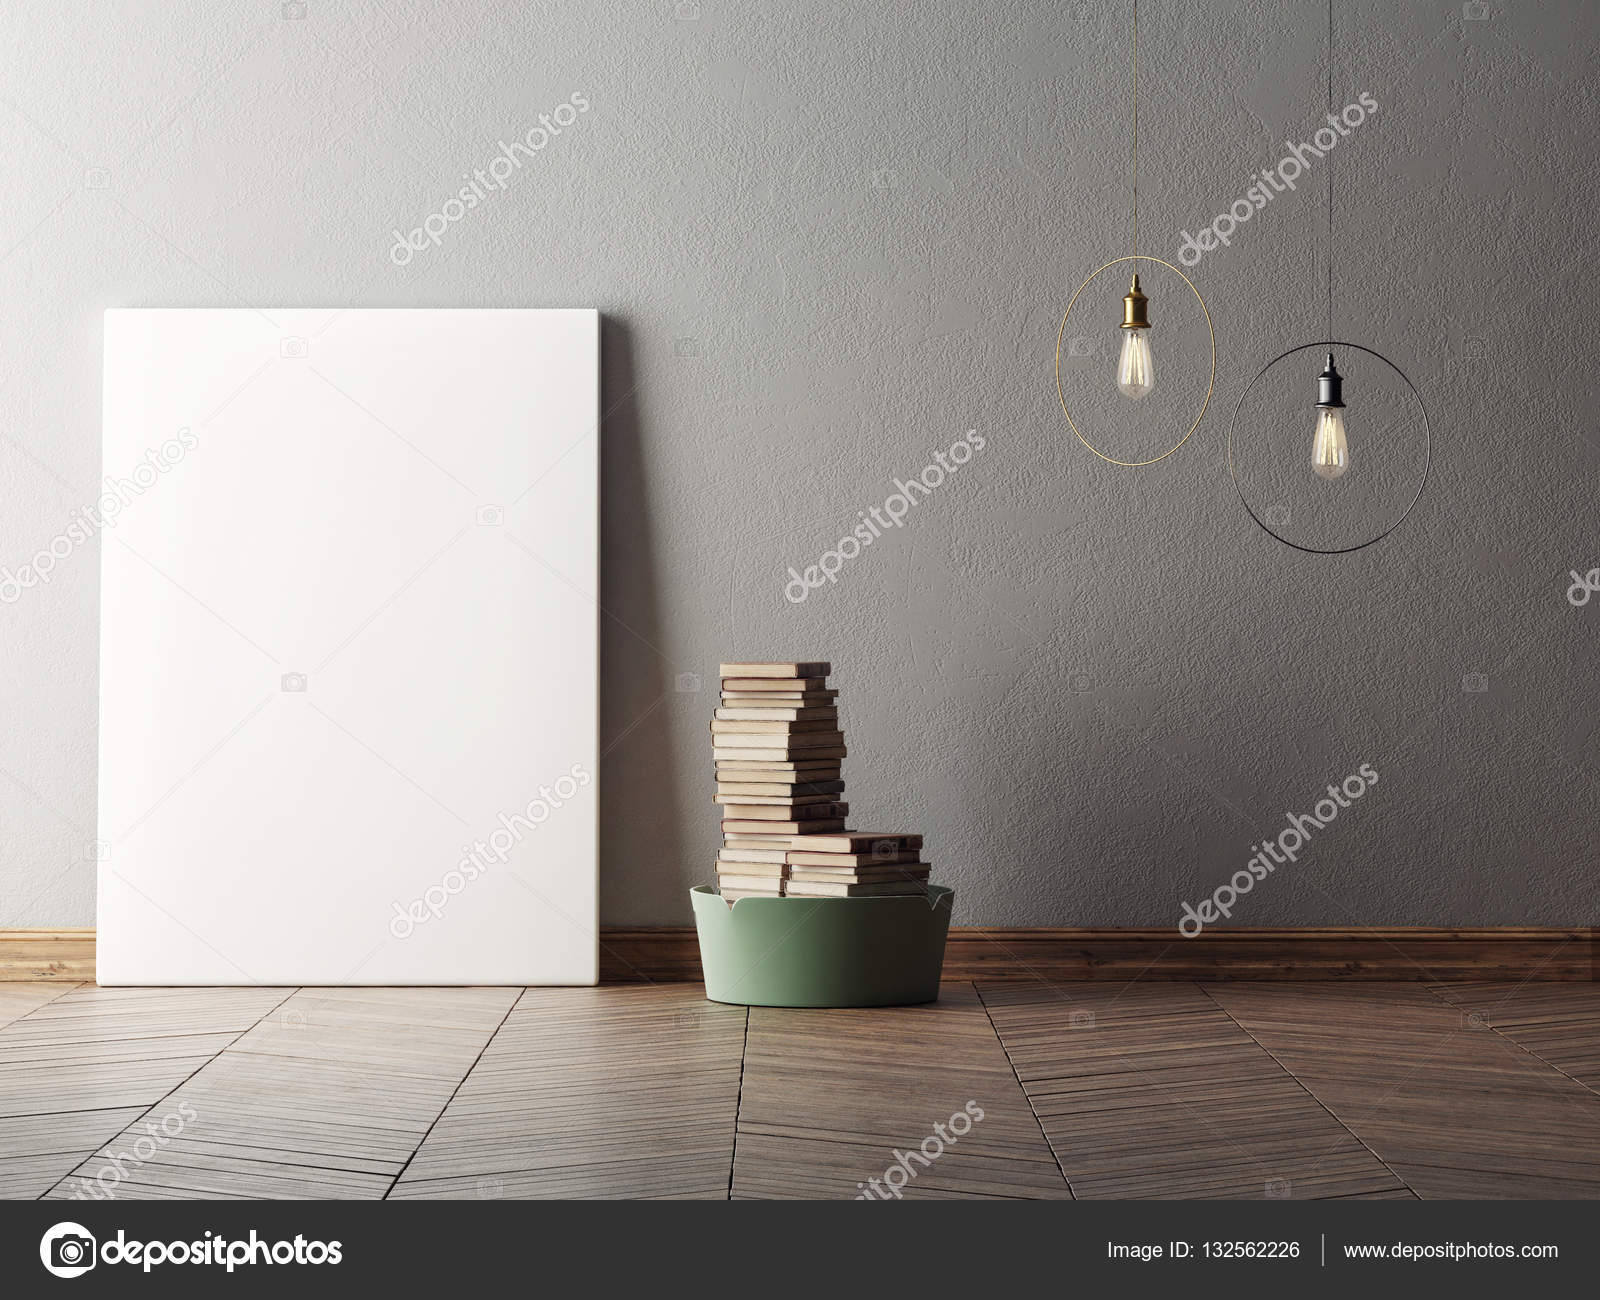 Mock up plakat im minimalismus interior design 3d illustraton